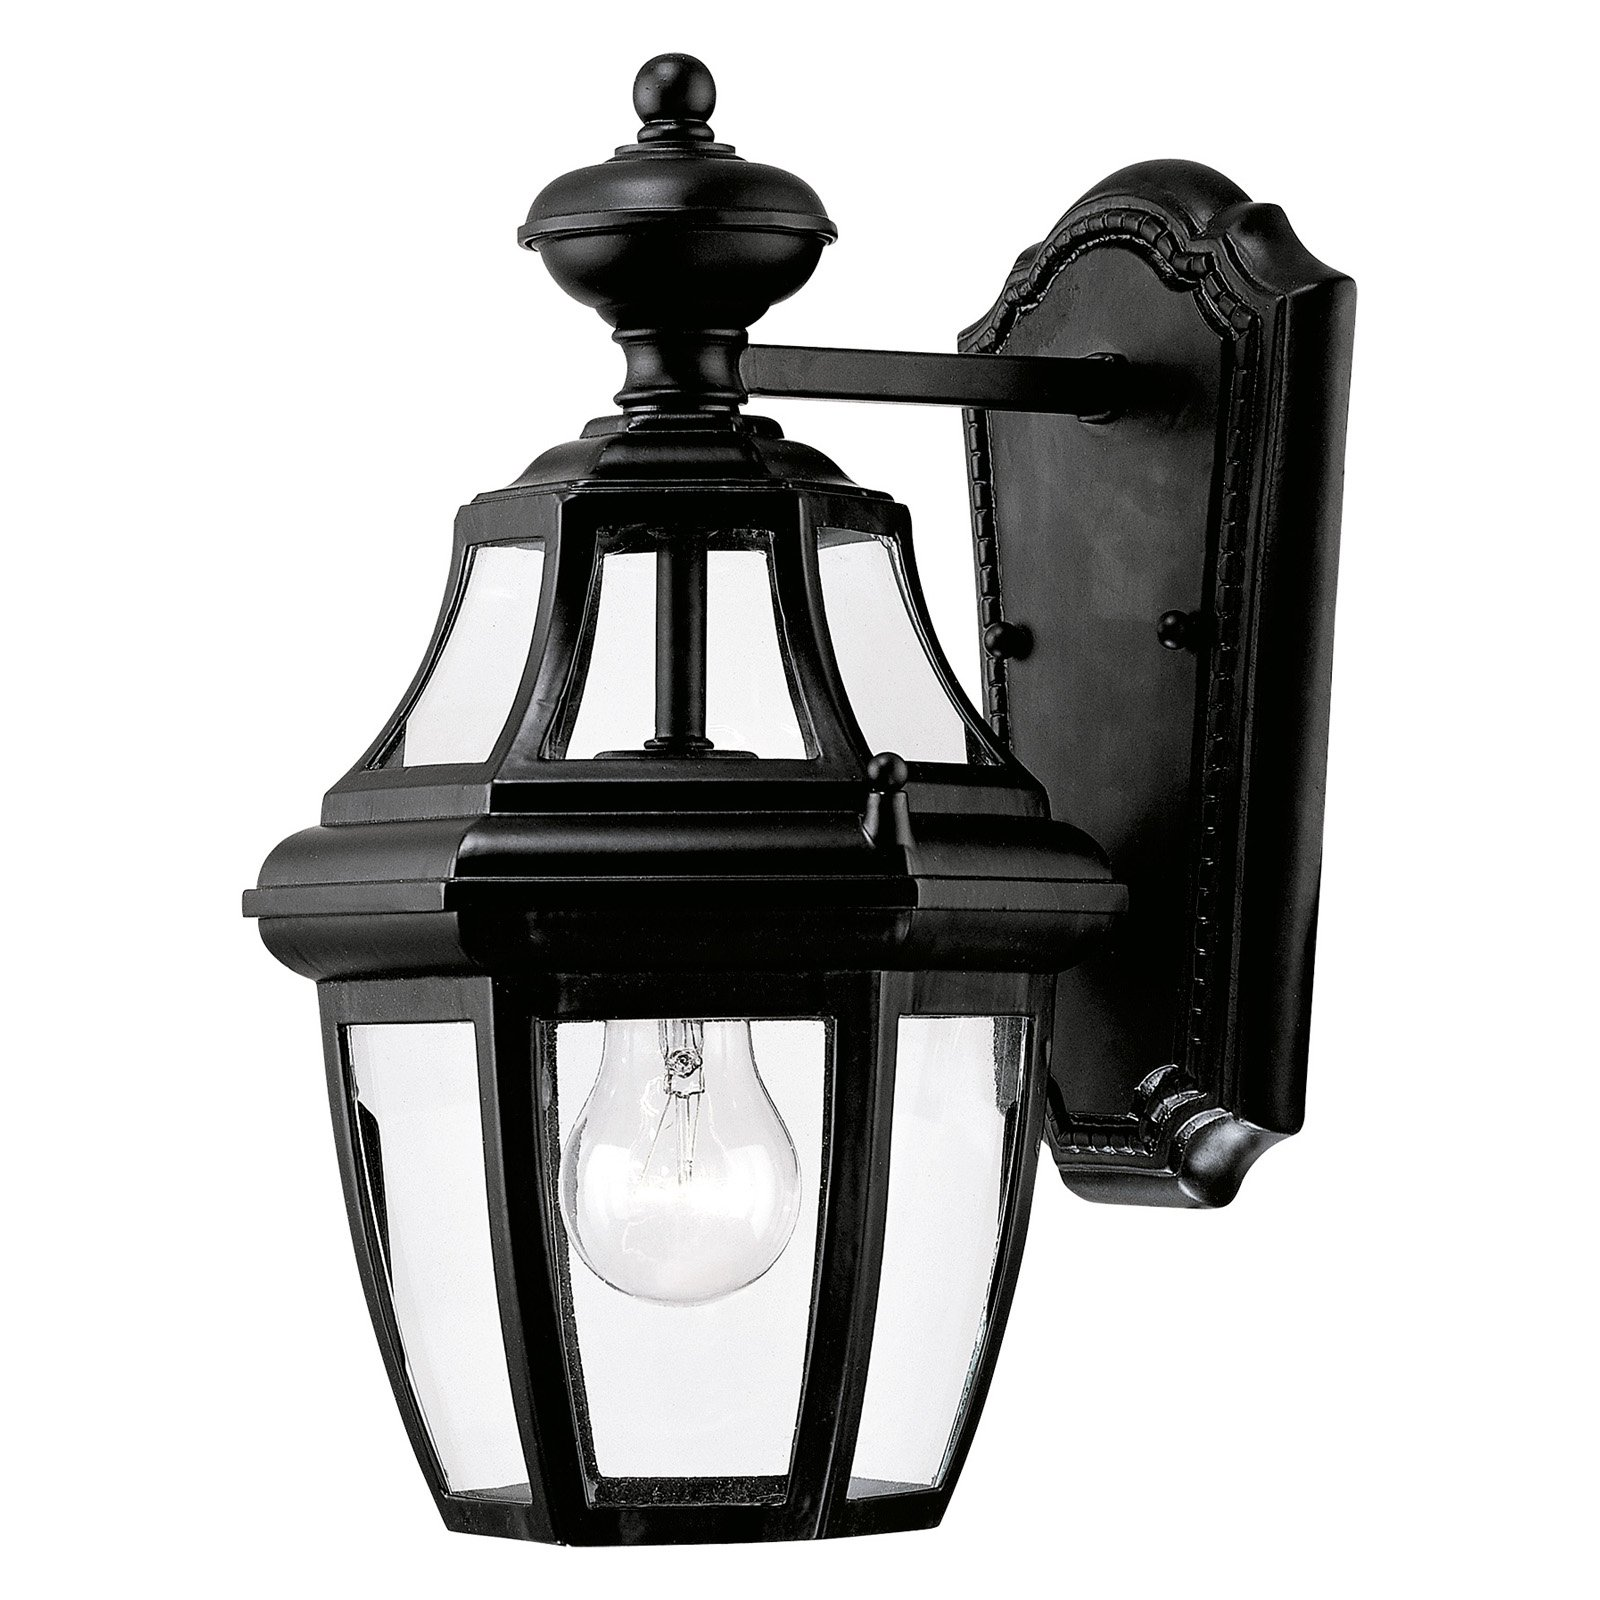 Savoy House Endorado 5-490 Outdoor Wall Lantern